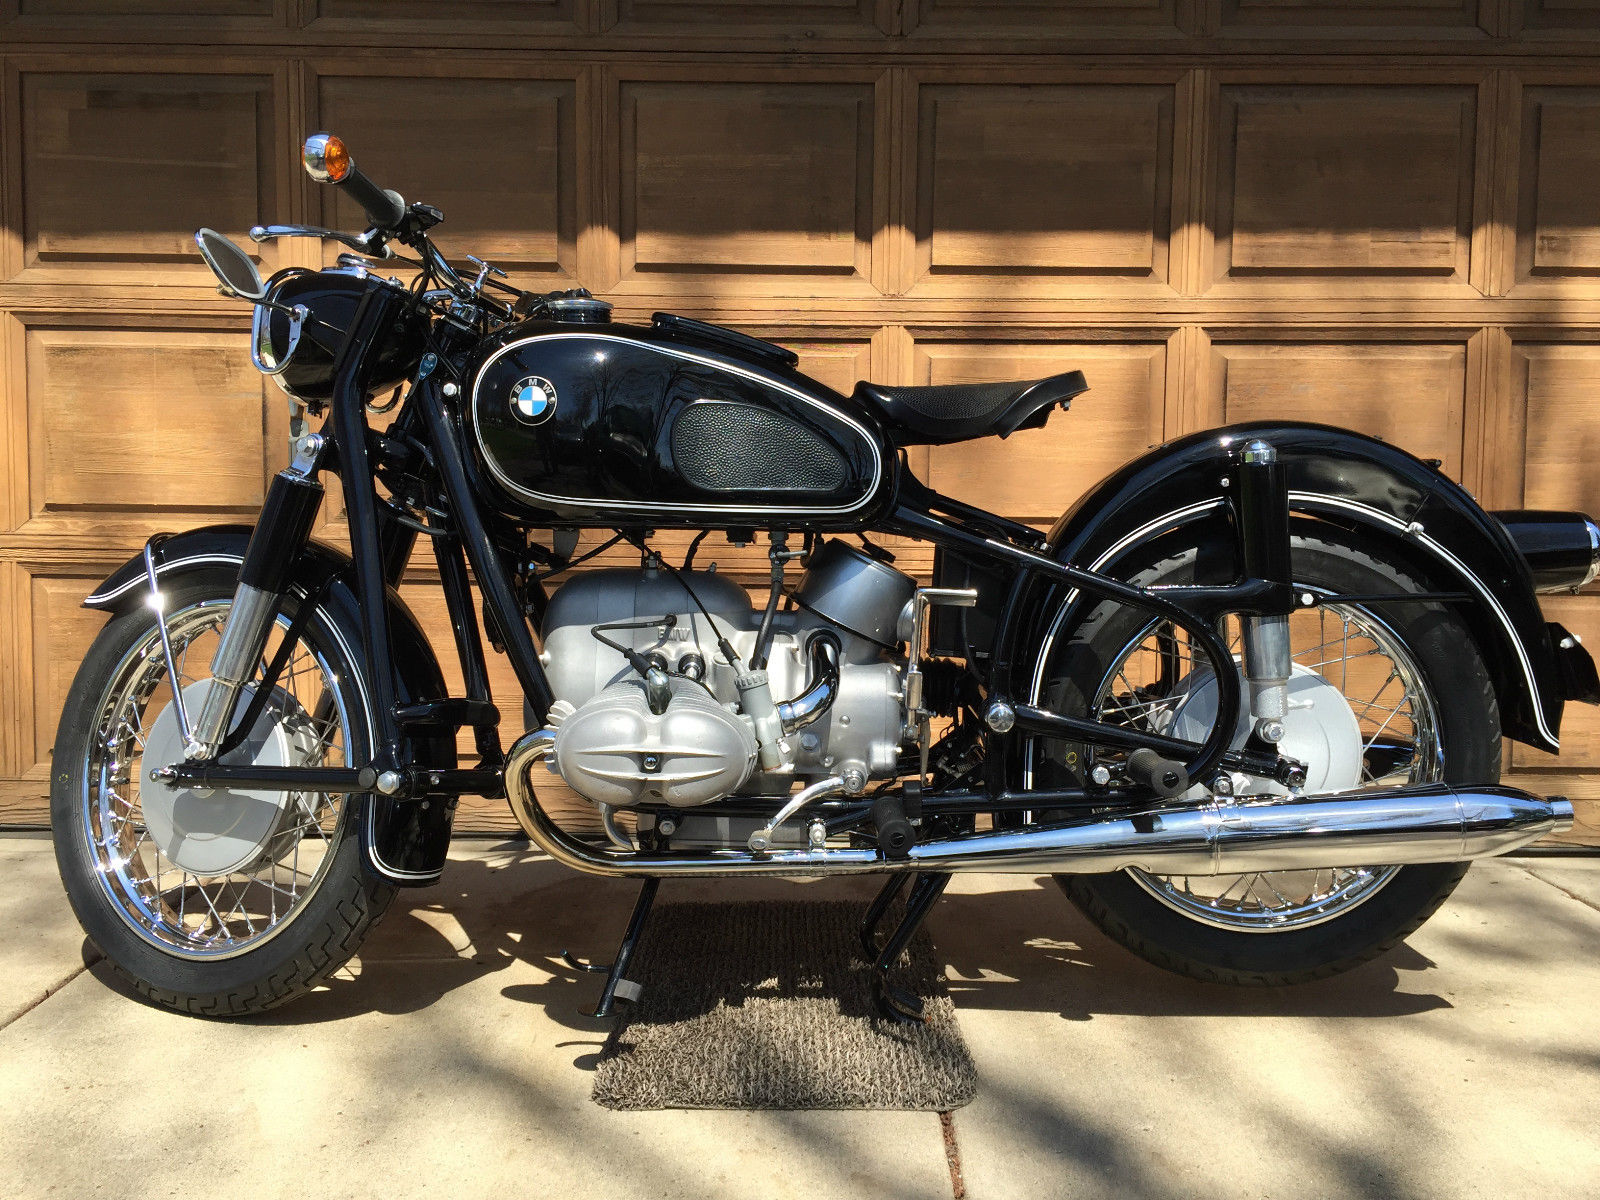 restored bmw r69s 1967 photographs at classic bikes restored bikes restored. Black Bedroom Furniture Sets. Home Design Ideas